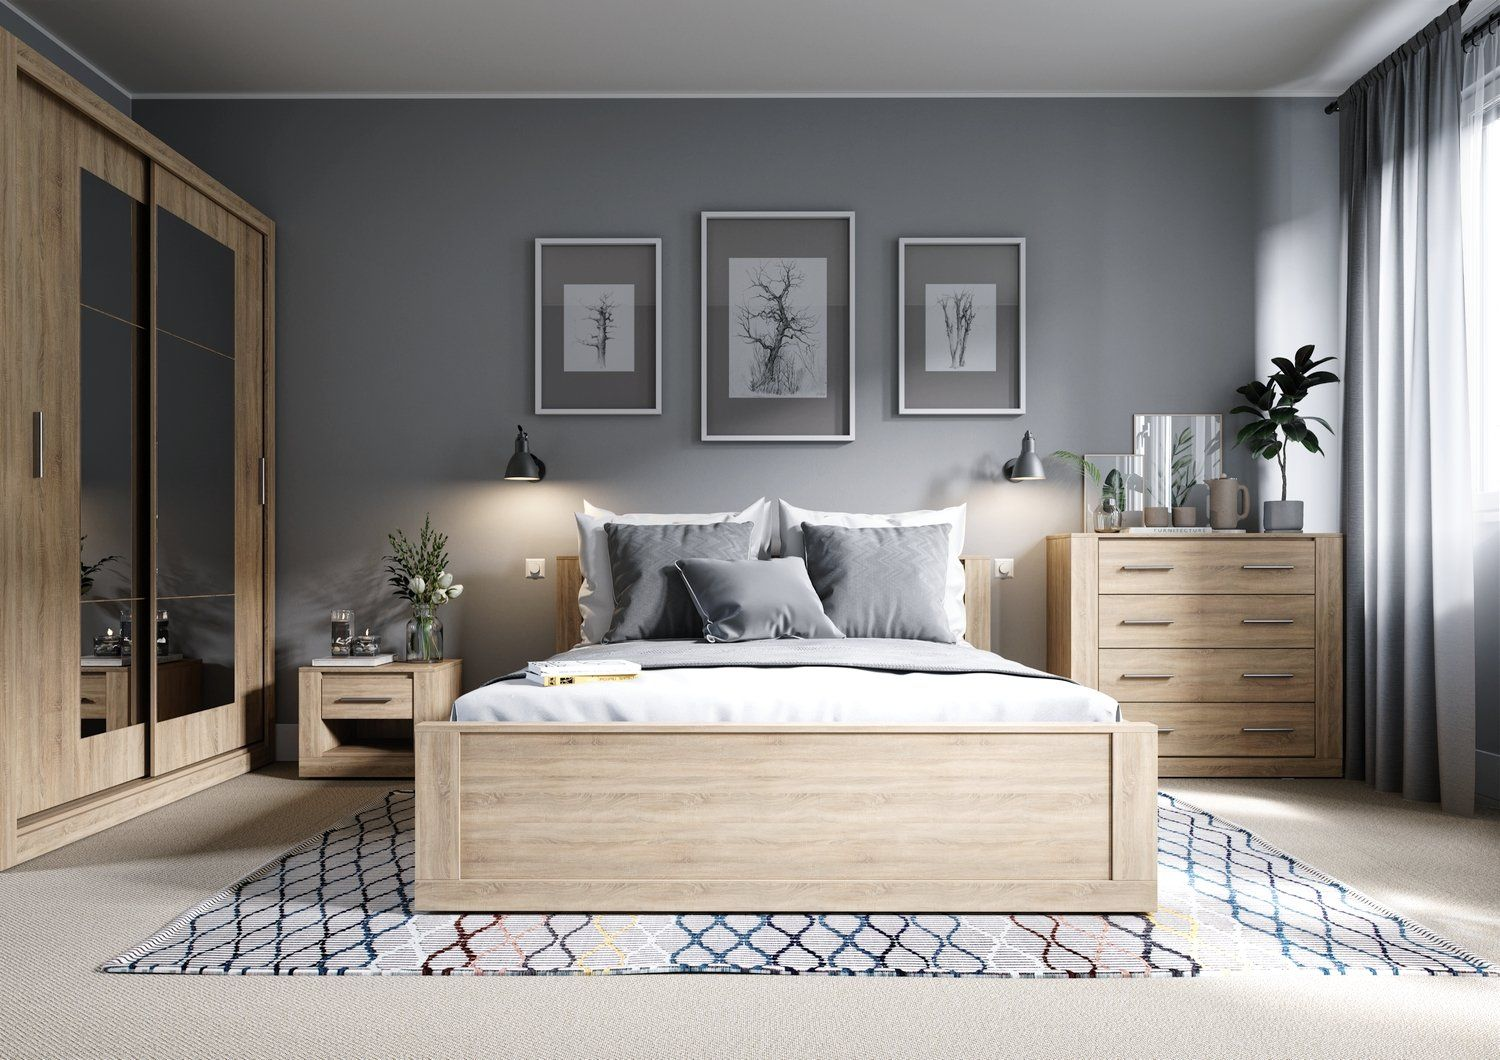 The Stylish Simple Design Is The Perfect Storage Solution For Your Modern Home Requirements Bedroom Interior Bedroom Design Home Decor Bedroom